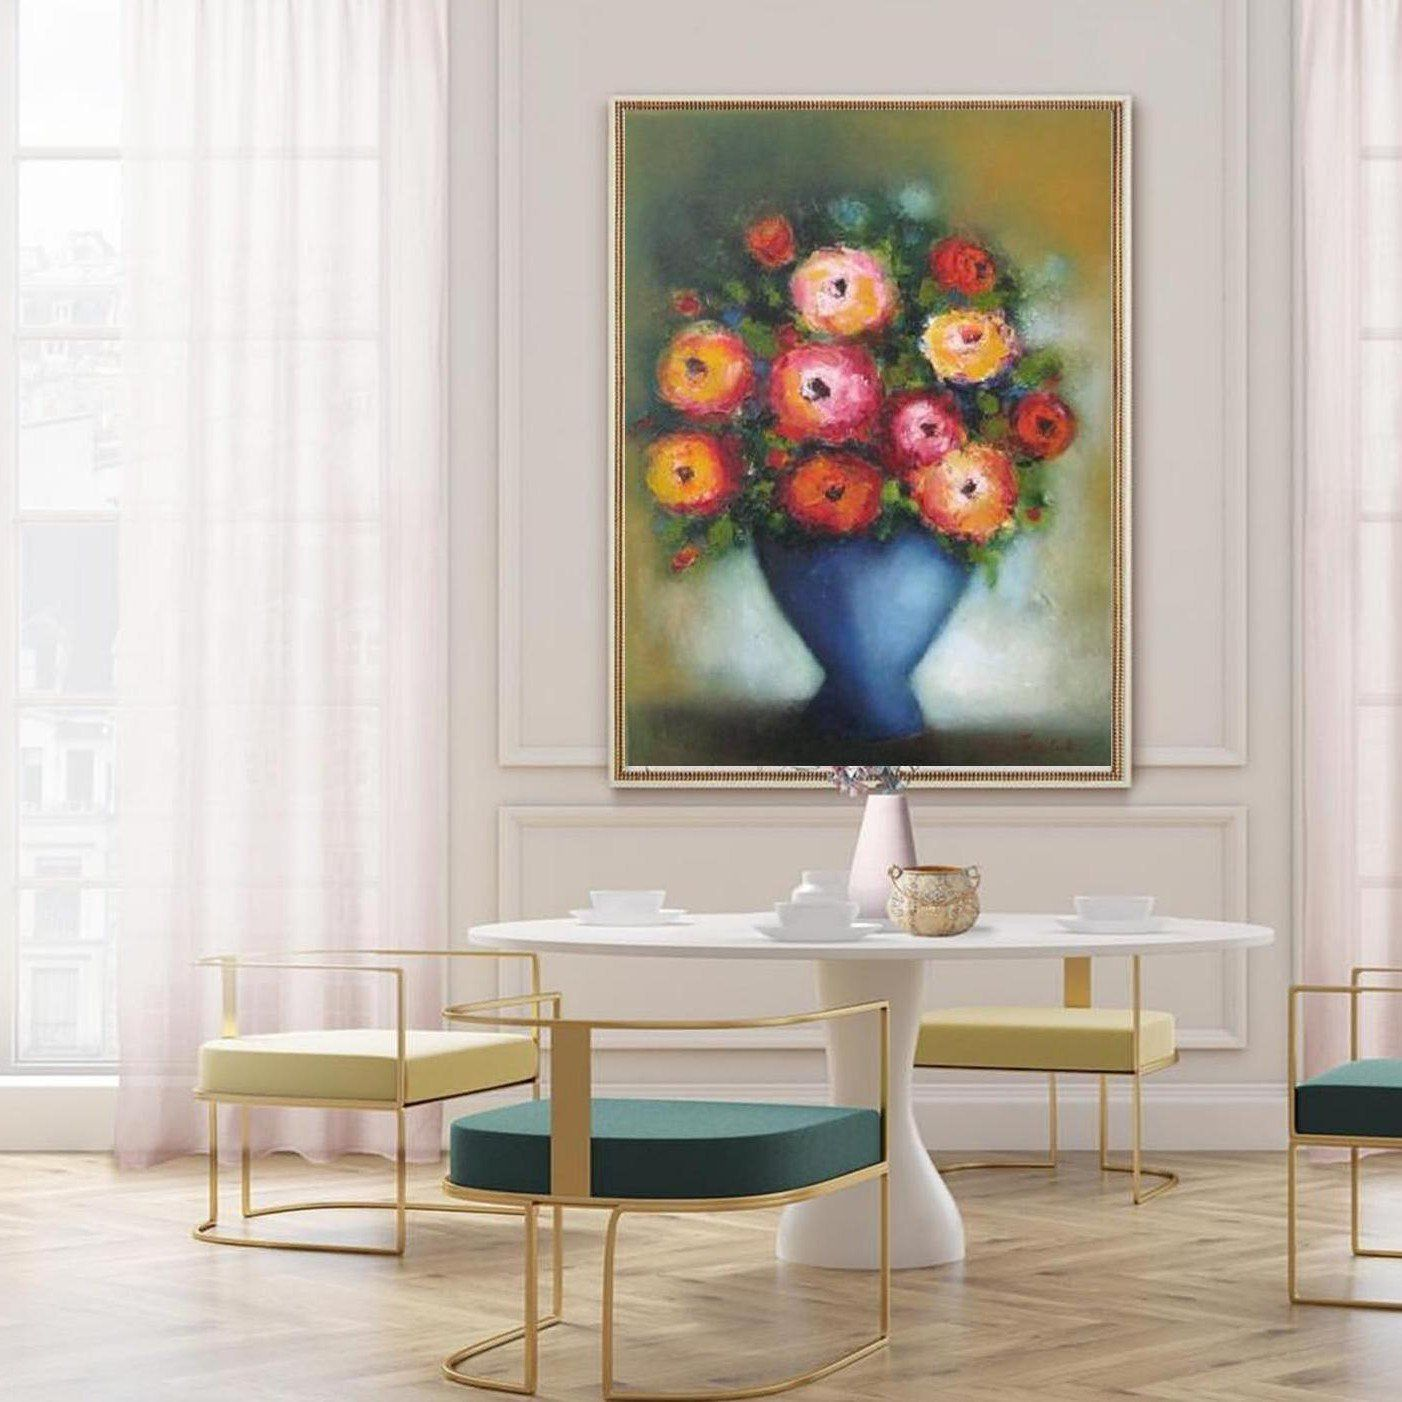 Katyafineart Shared A New Photo On Etsy Dining Room Wall Art Room Wall Art Etsy Wall Art